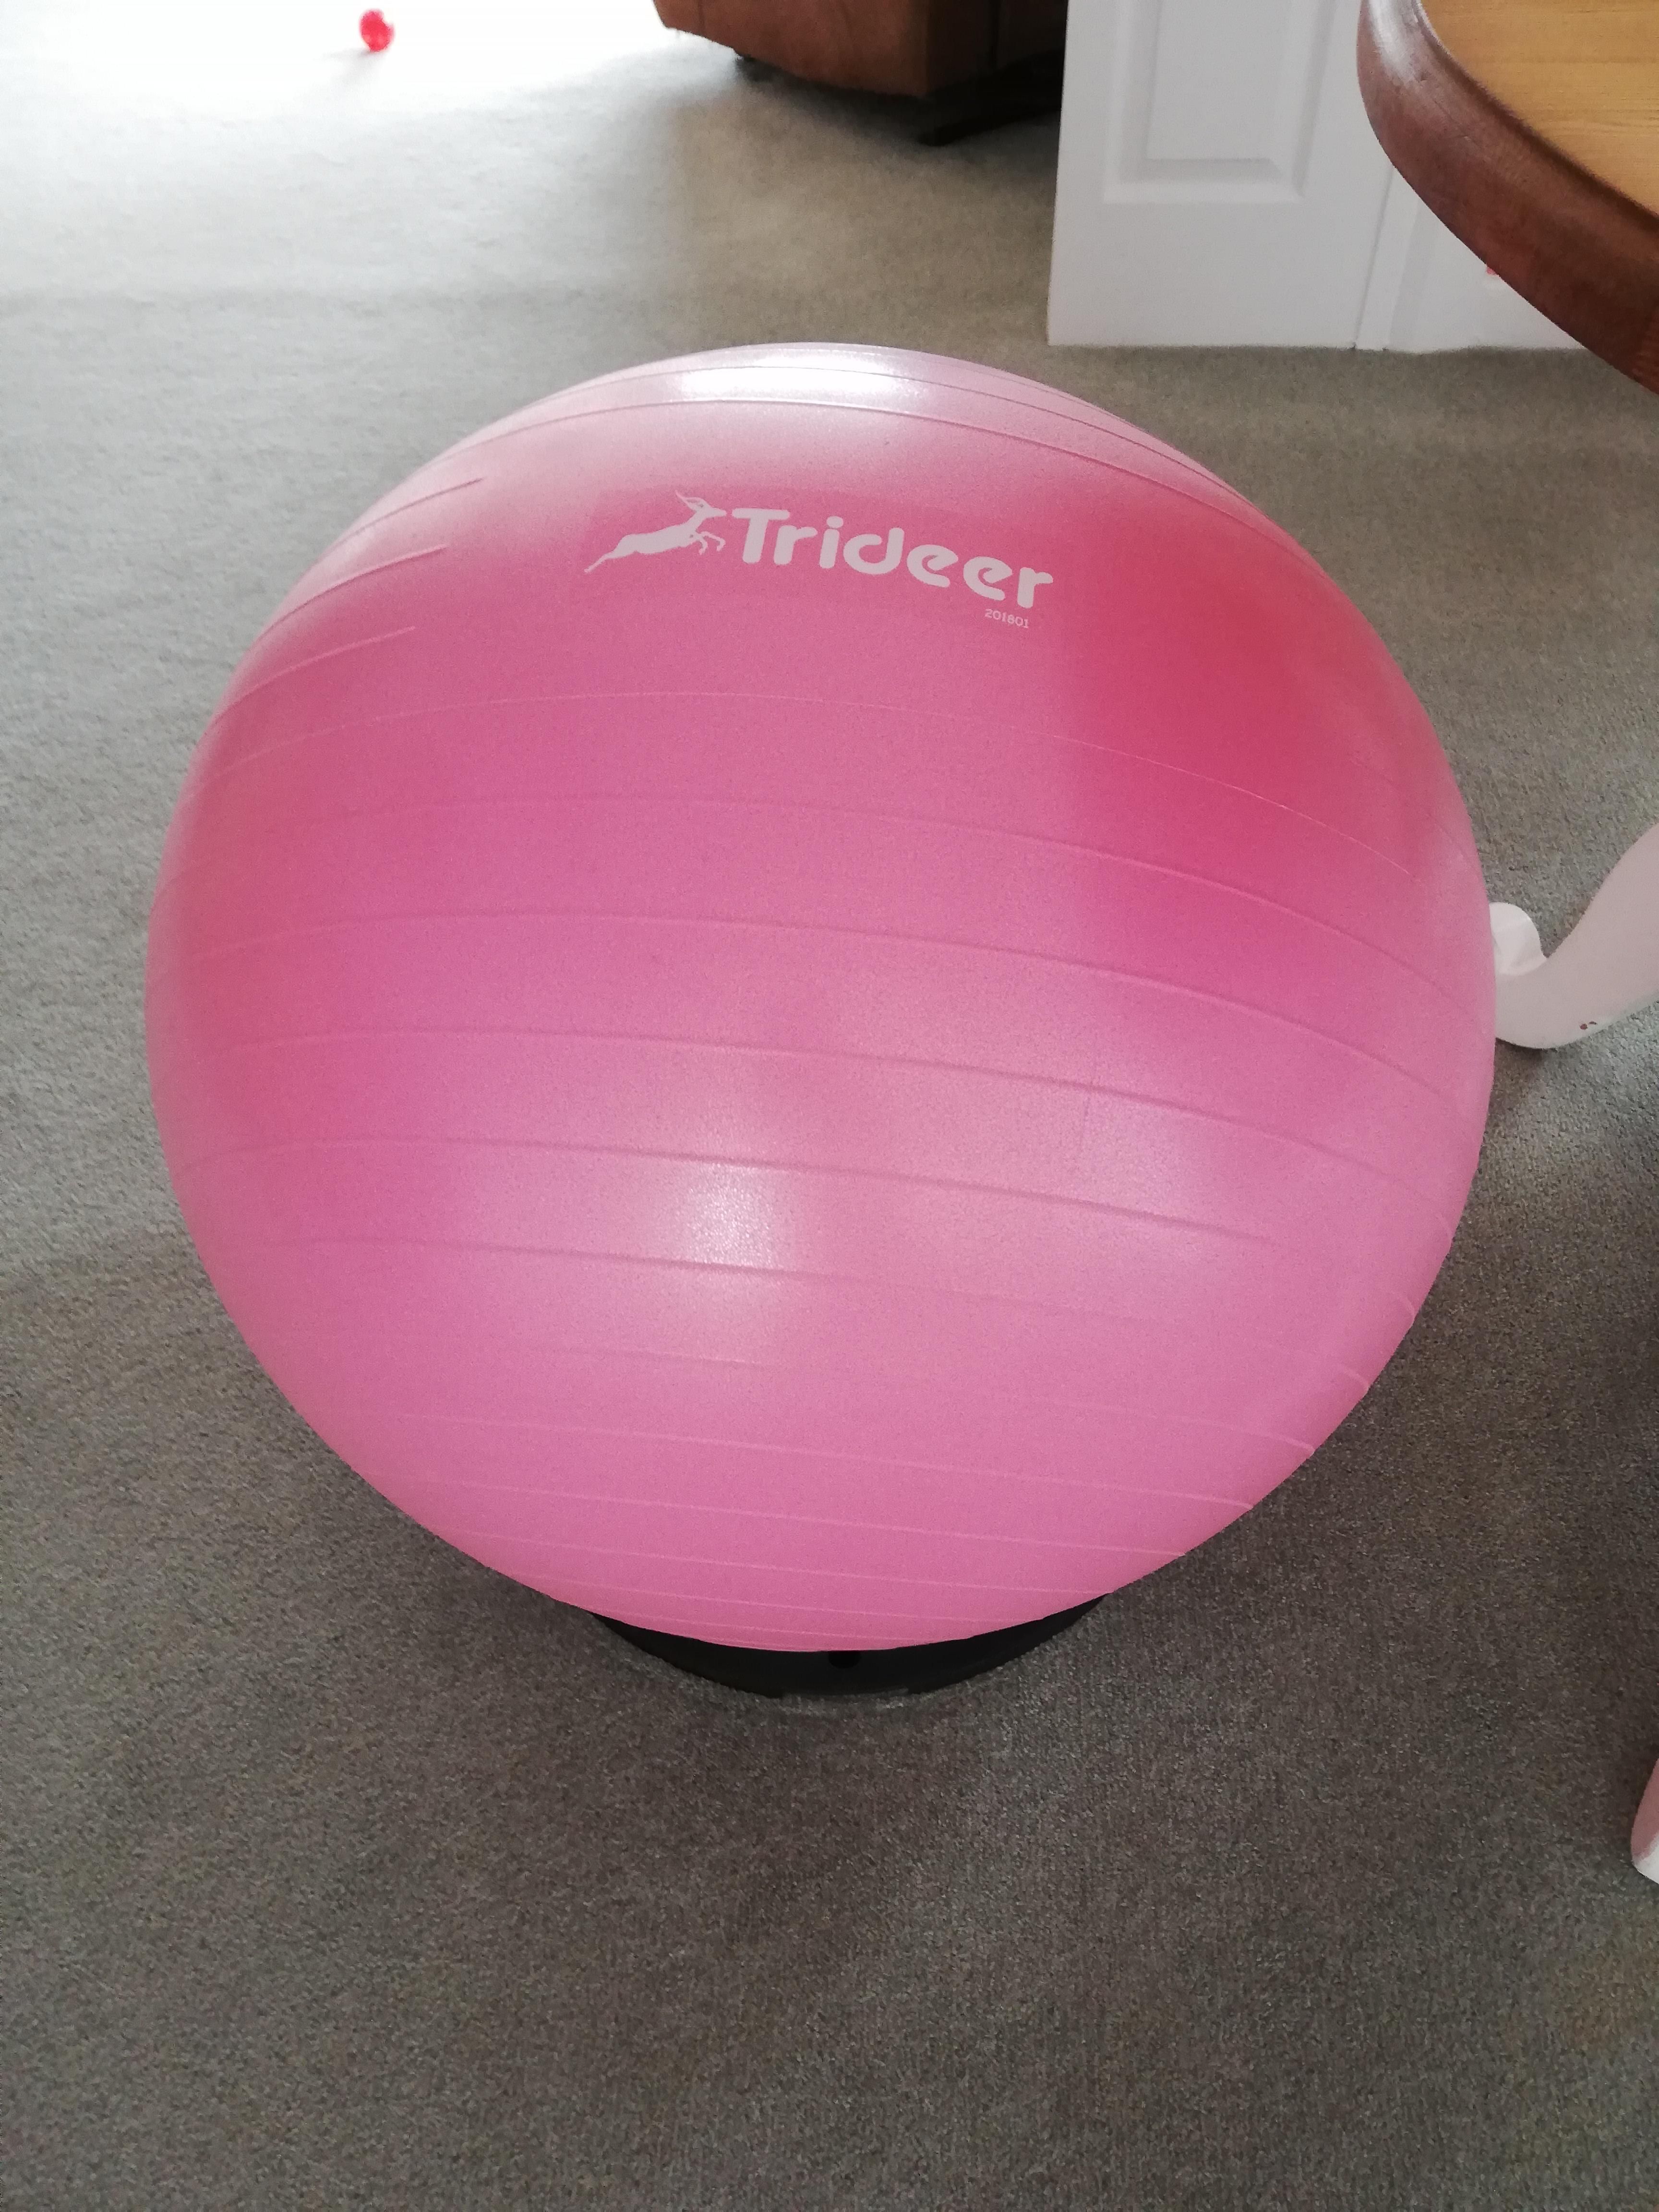 Trideer Exercise Ball (60cm) Extra Thick Yoga Ball Chair